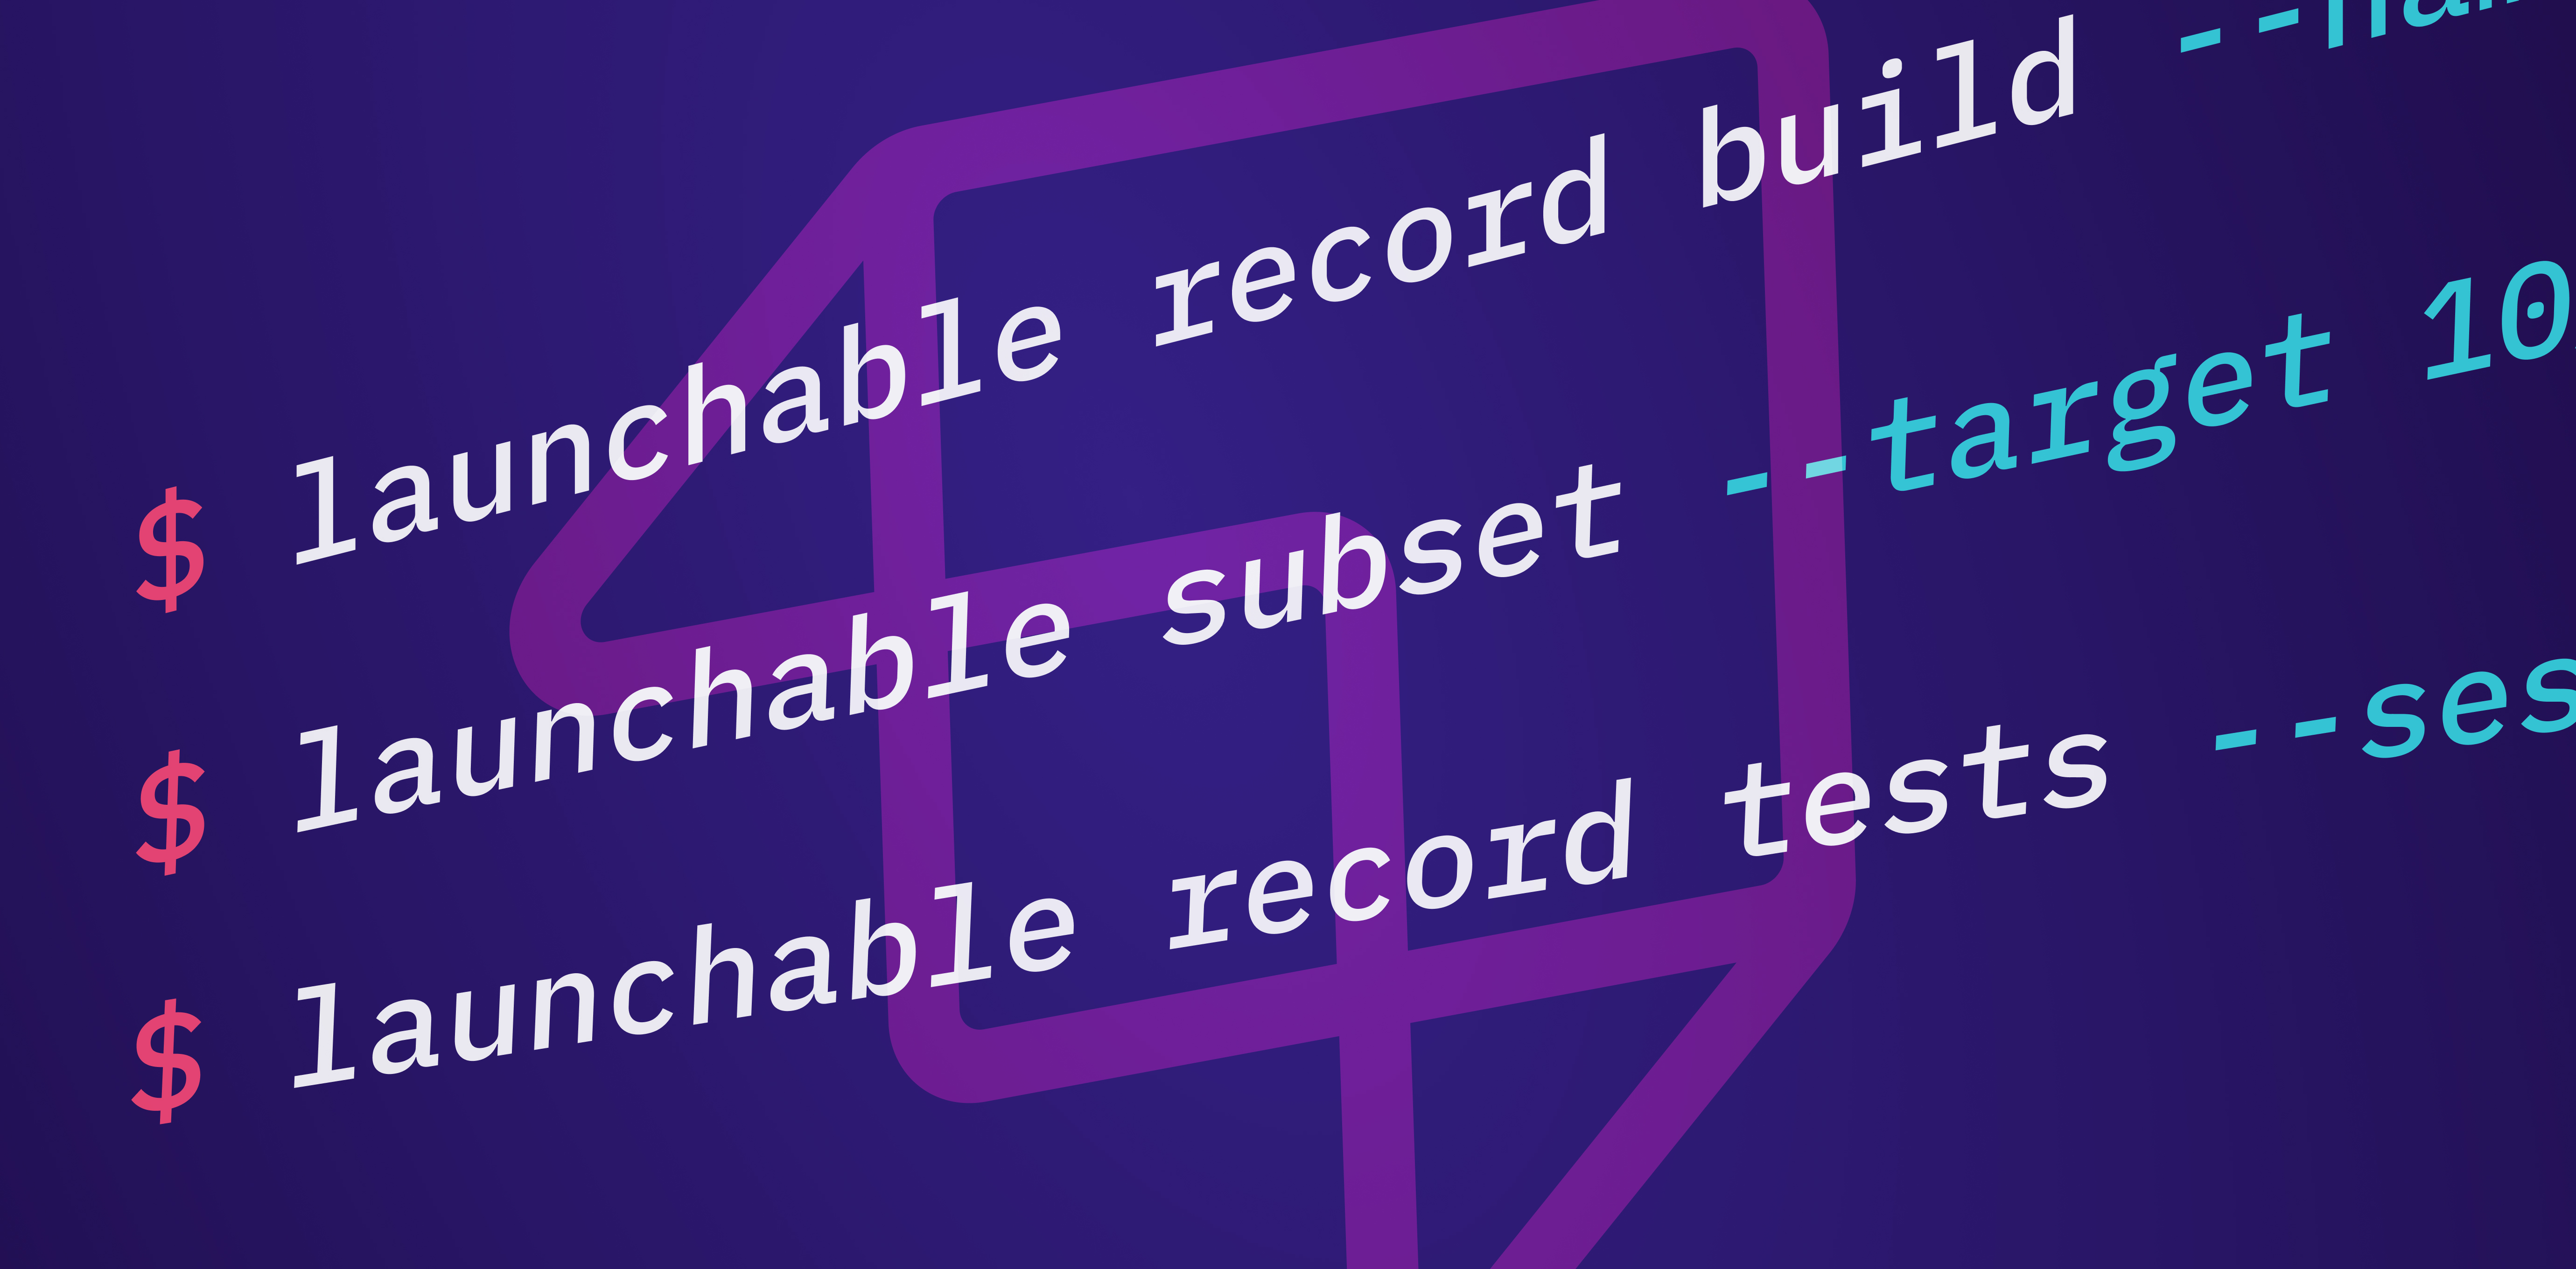 Introducing the Launchable CLI!